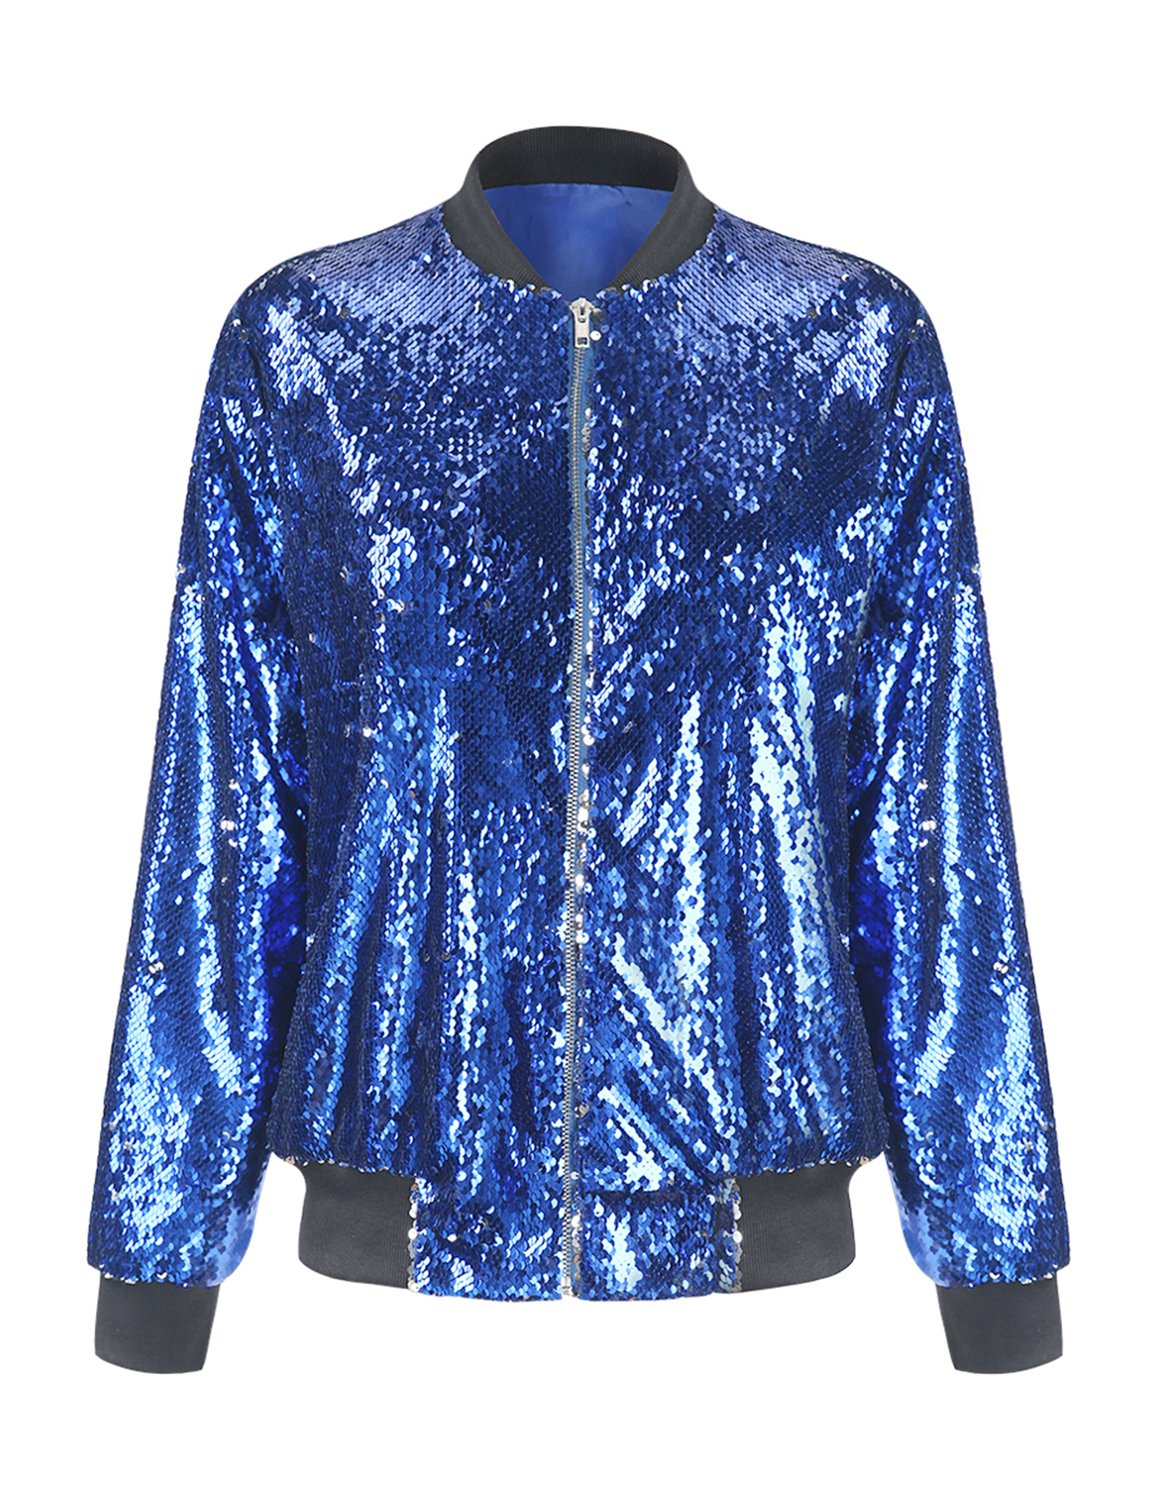 HaoDuoYi Womens Casual Lightweight Sequin Zipper Bomber Jacket (Large, Blue) by HaoDuoYi (Image #1)